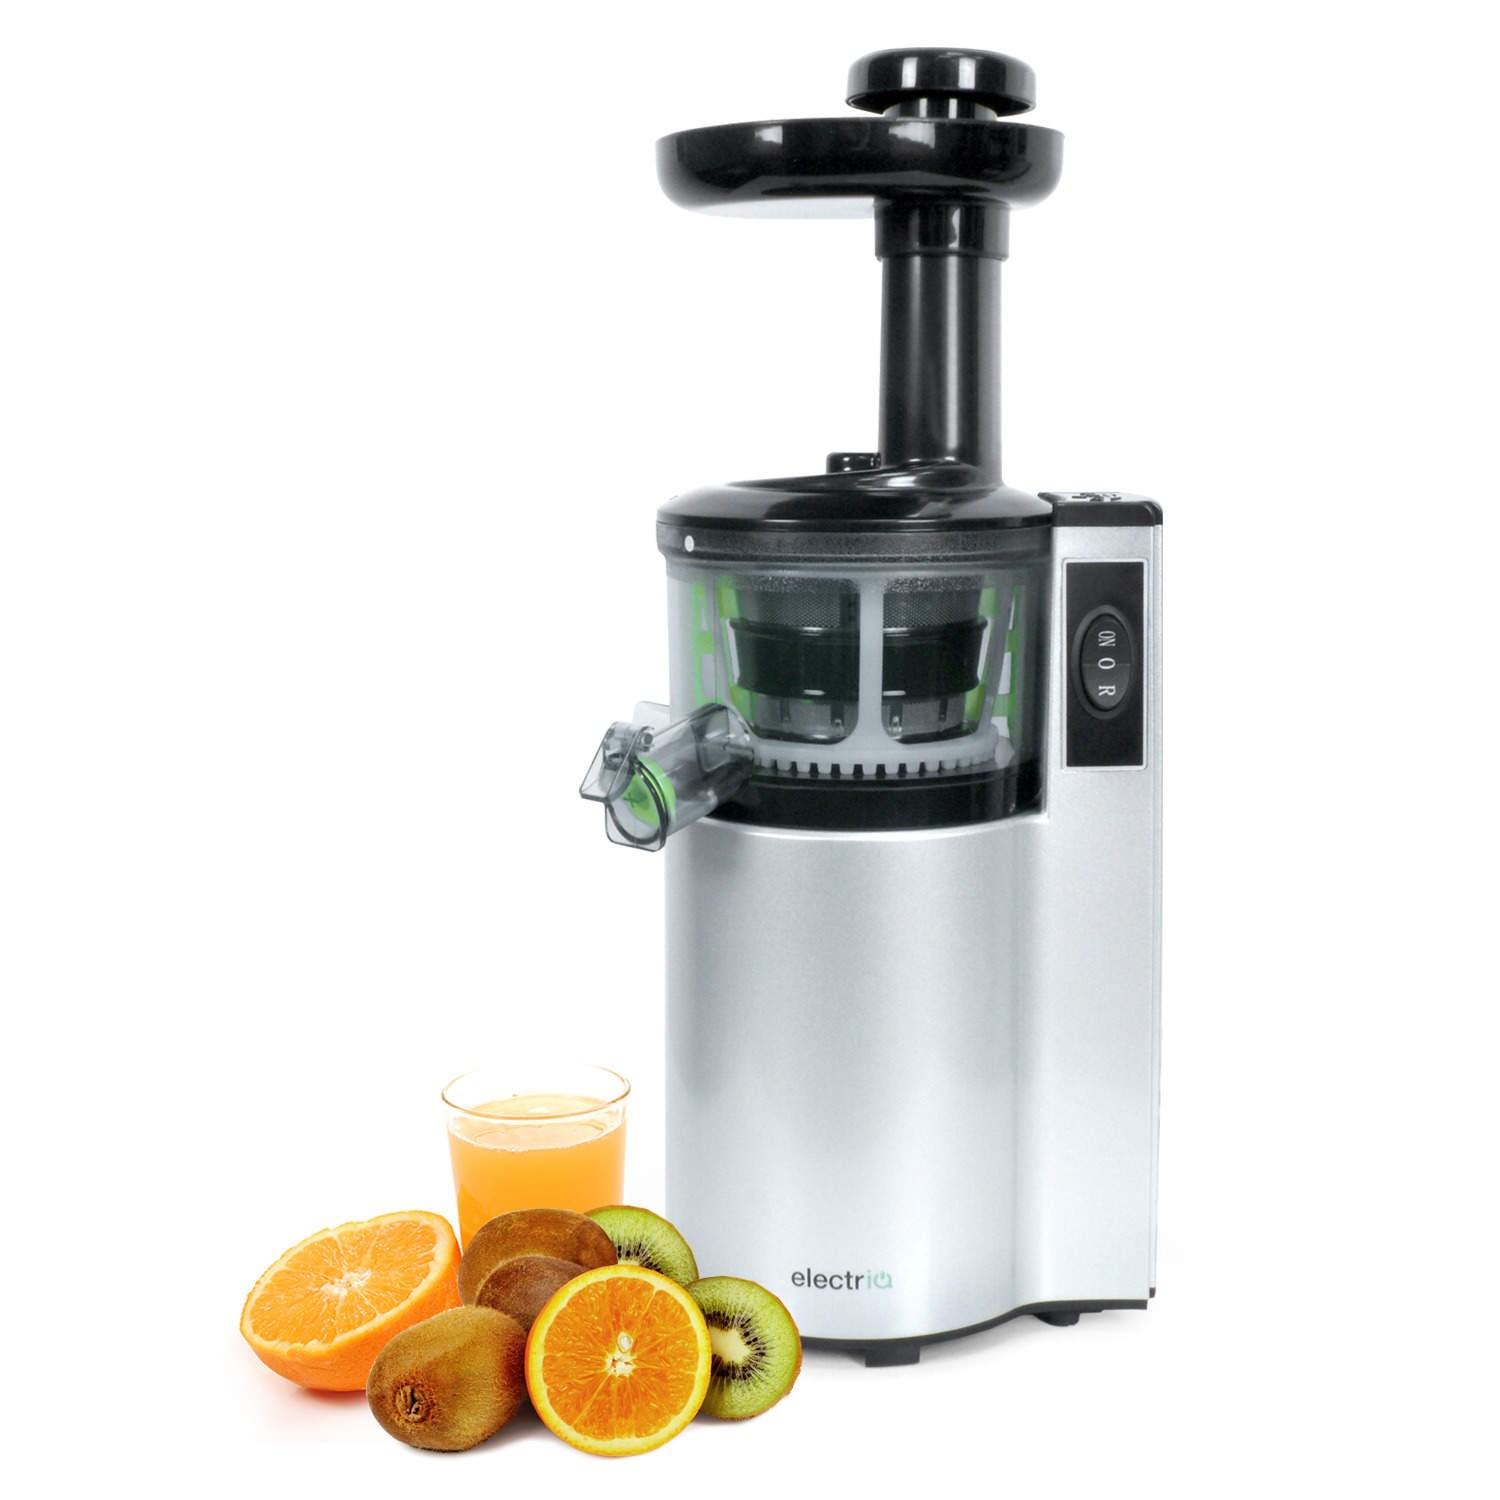 Slow Juicer Juicer : ElectriQ vertical Slow Masticating Juicer Fruit vegetable Juice Extractor eBay